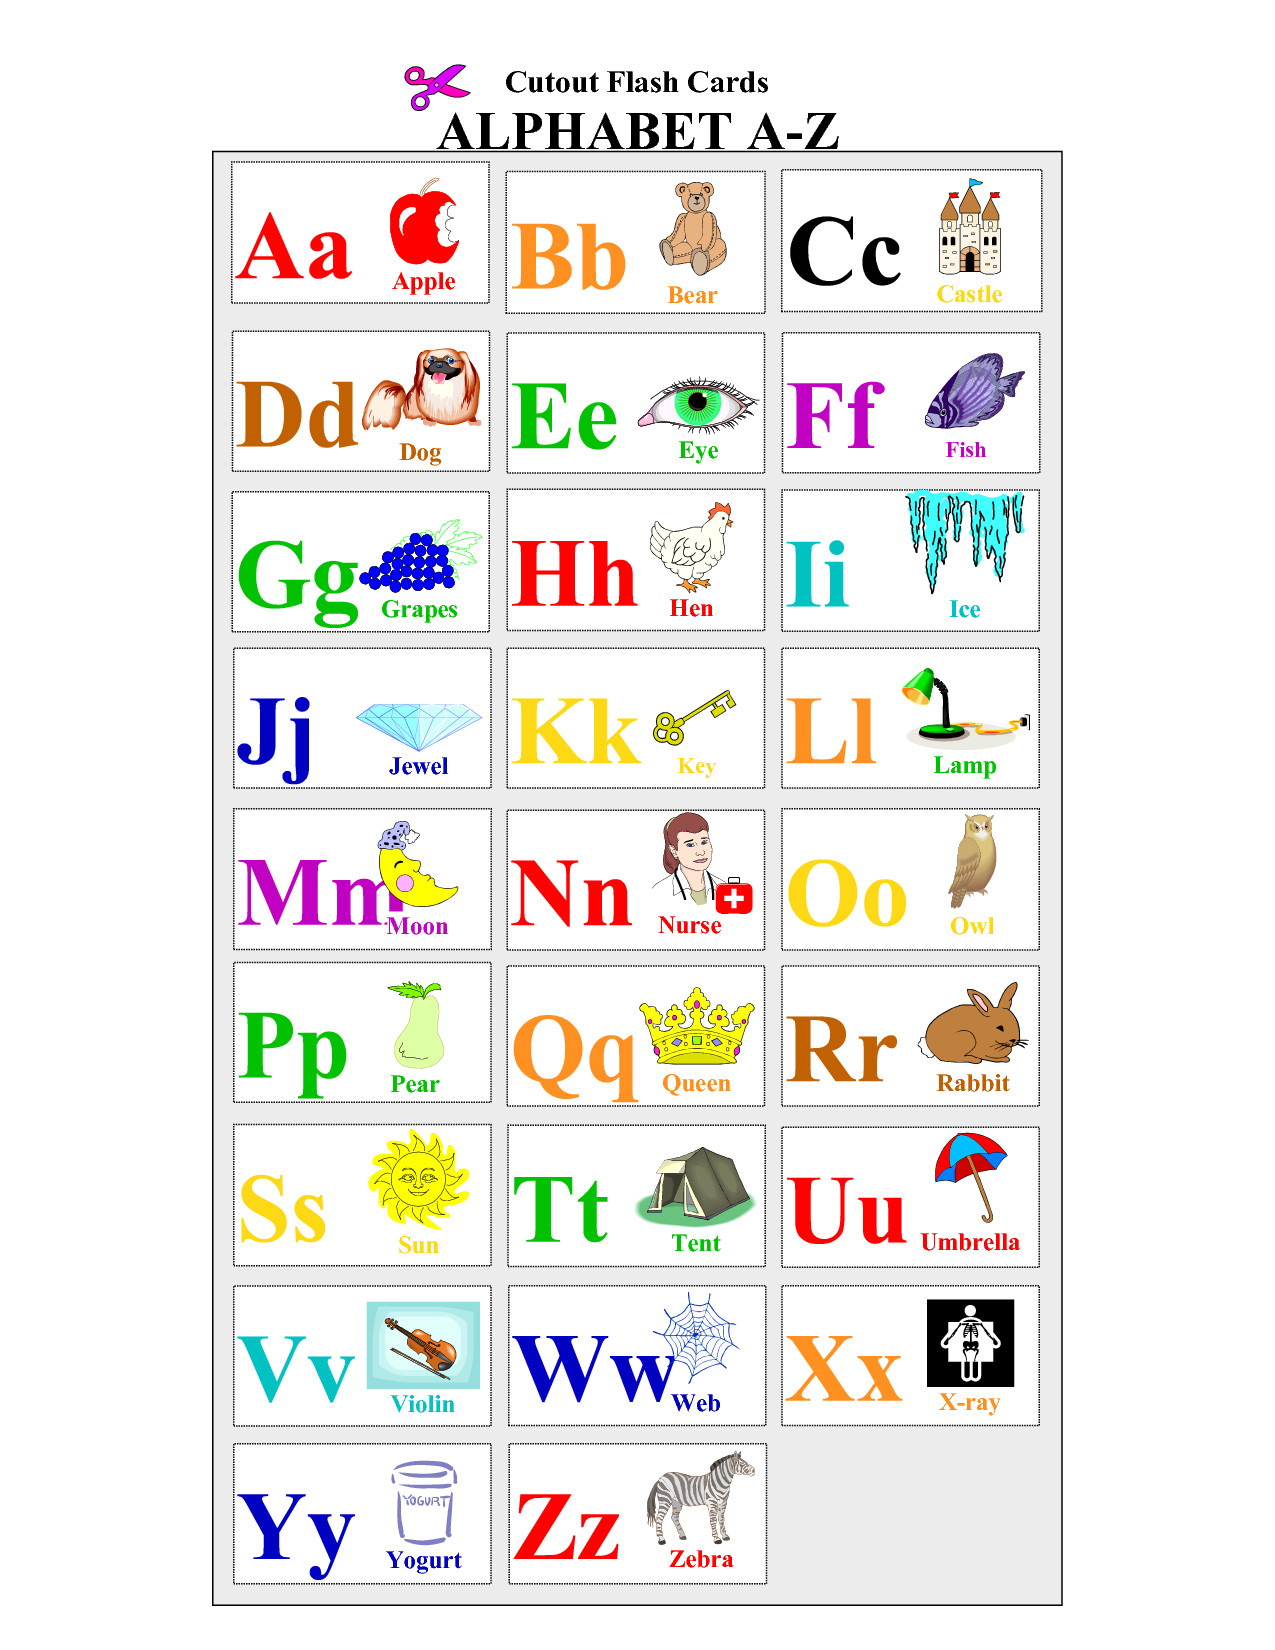 Printable Alphabet | Printable Alphabet Cards Educational Flash - Free Printable Alphabet Cards With Pictures